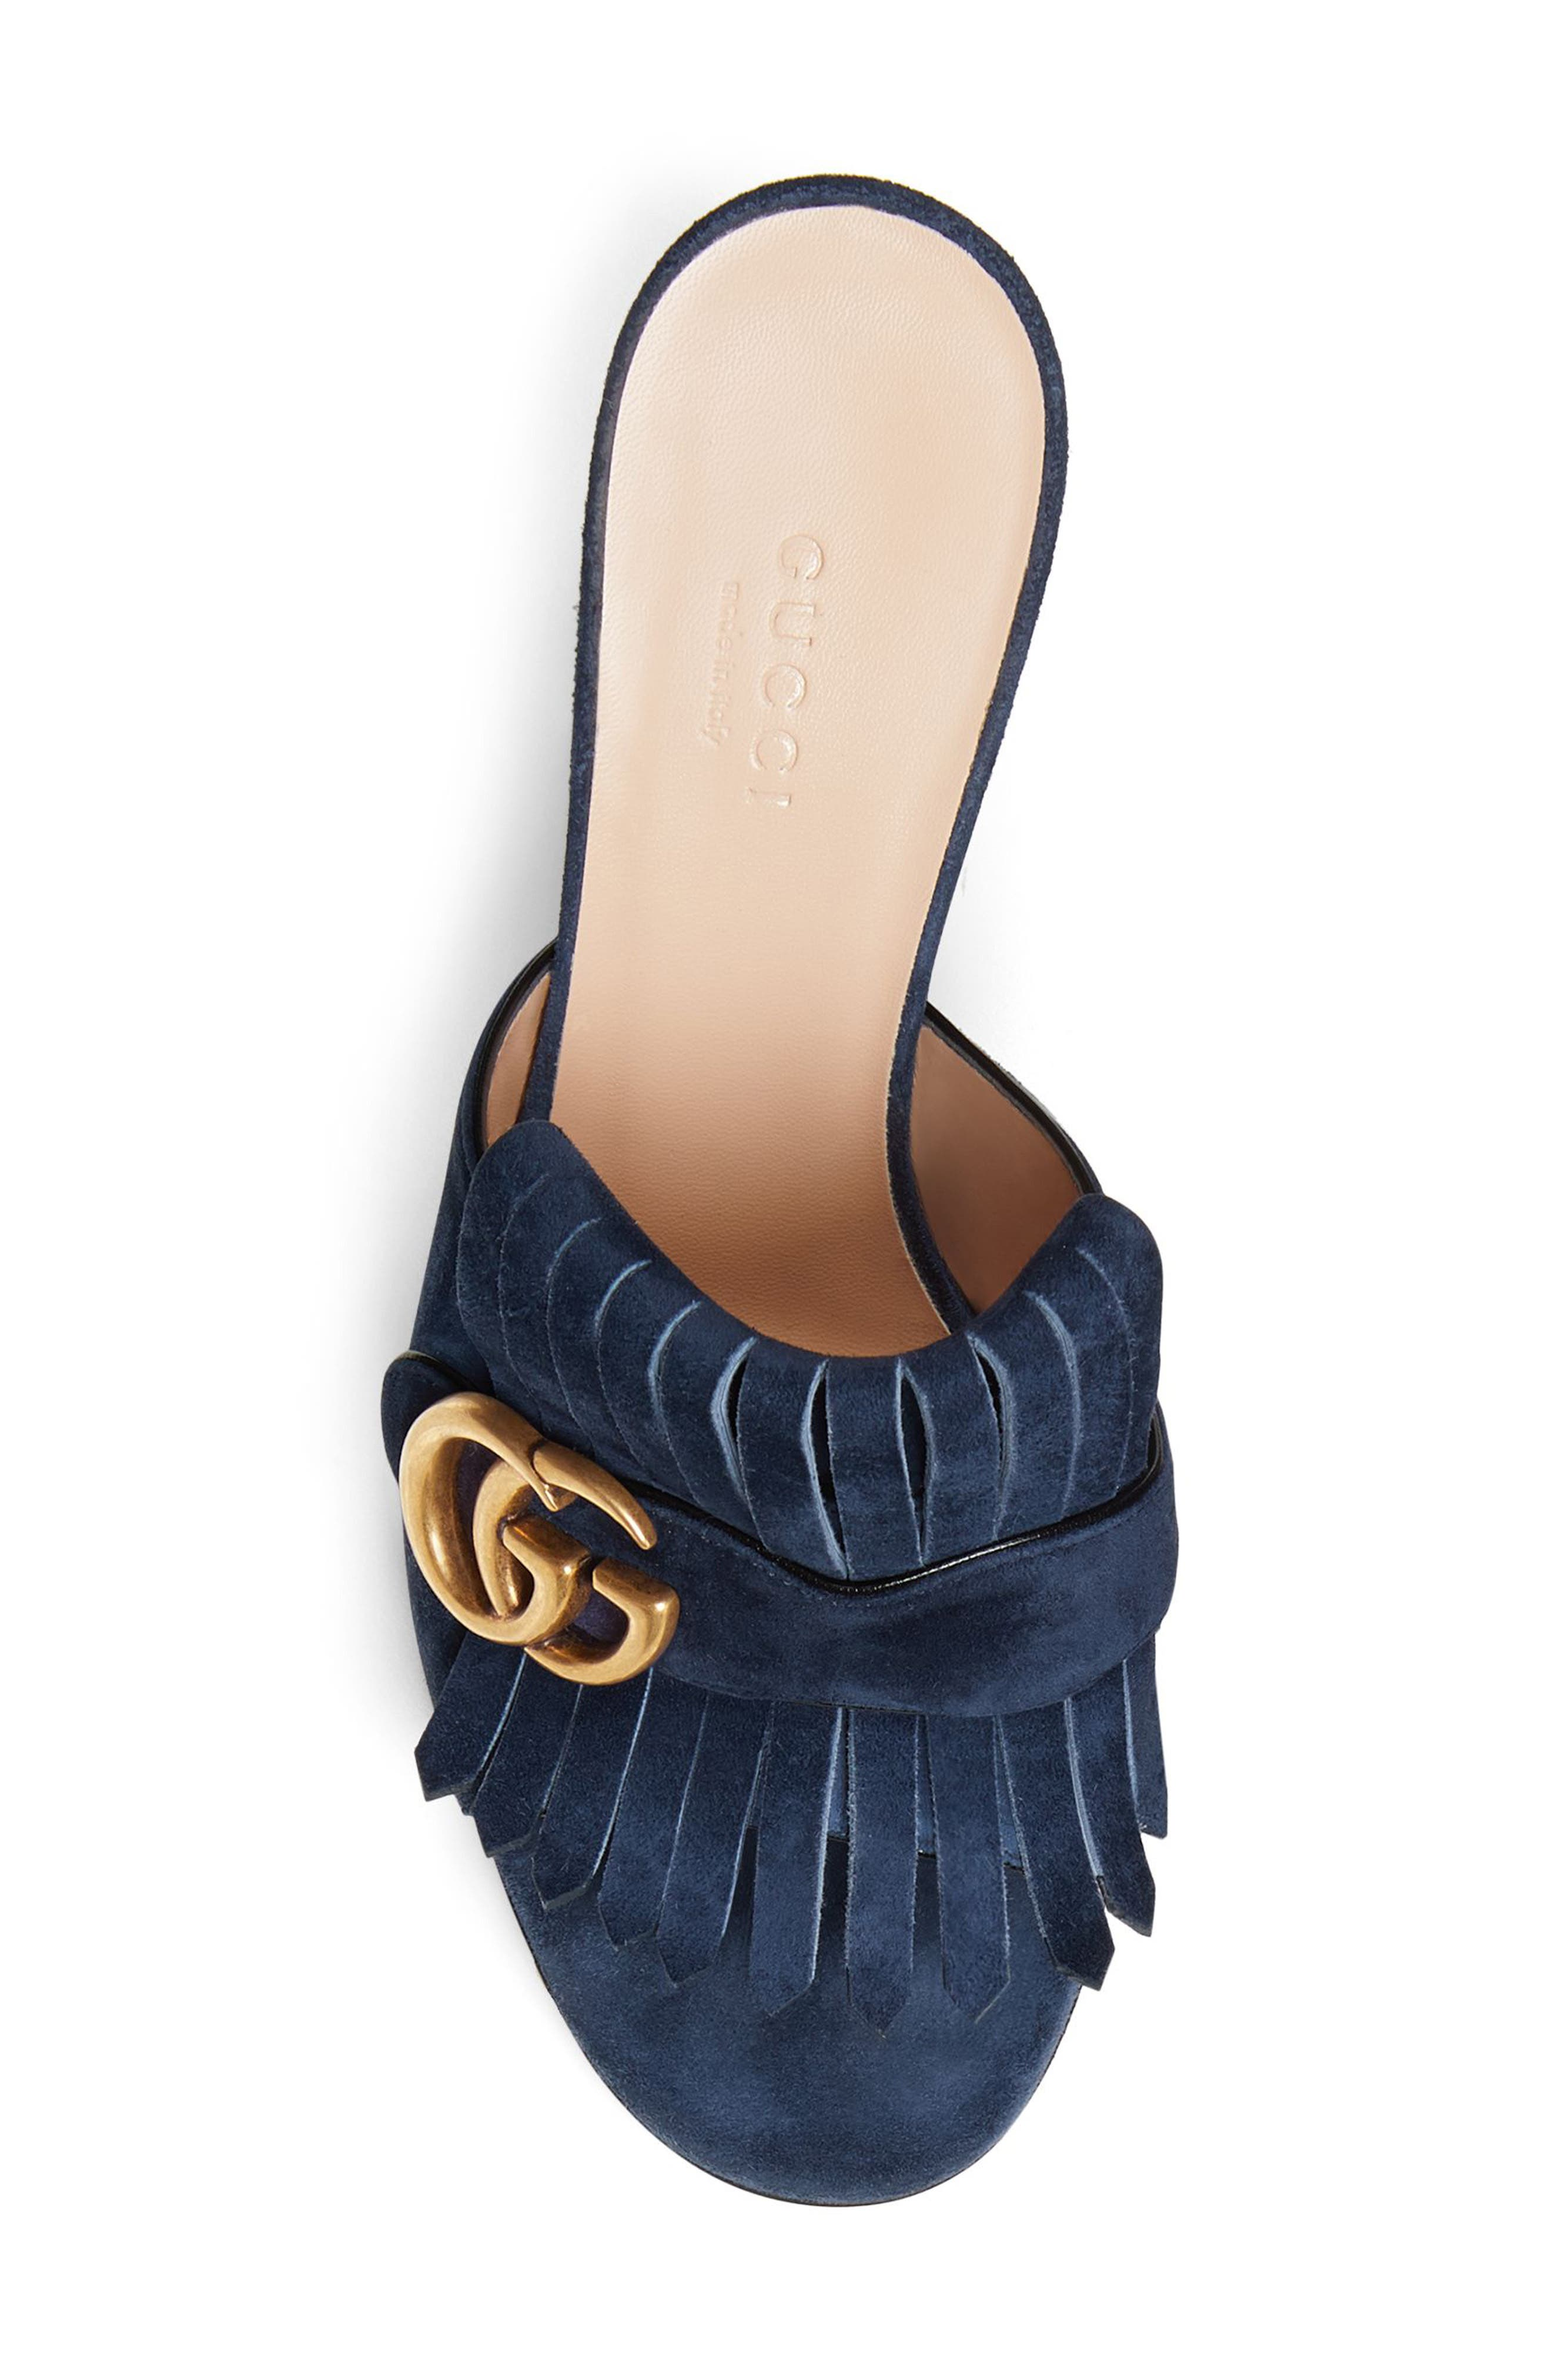 GUCCI, GG Marmont Peep Toe Mule, Alternate thumbnail 4, color, BLUE INK SUEDE